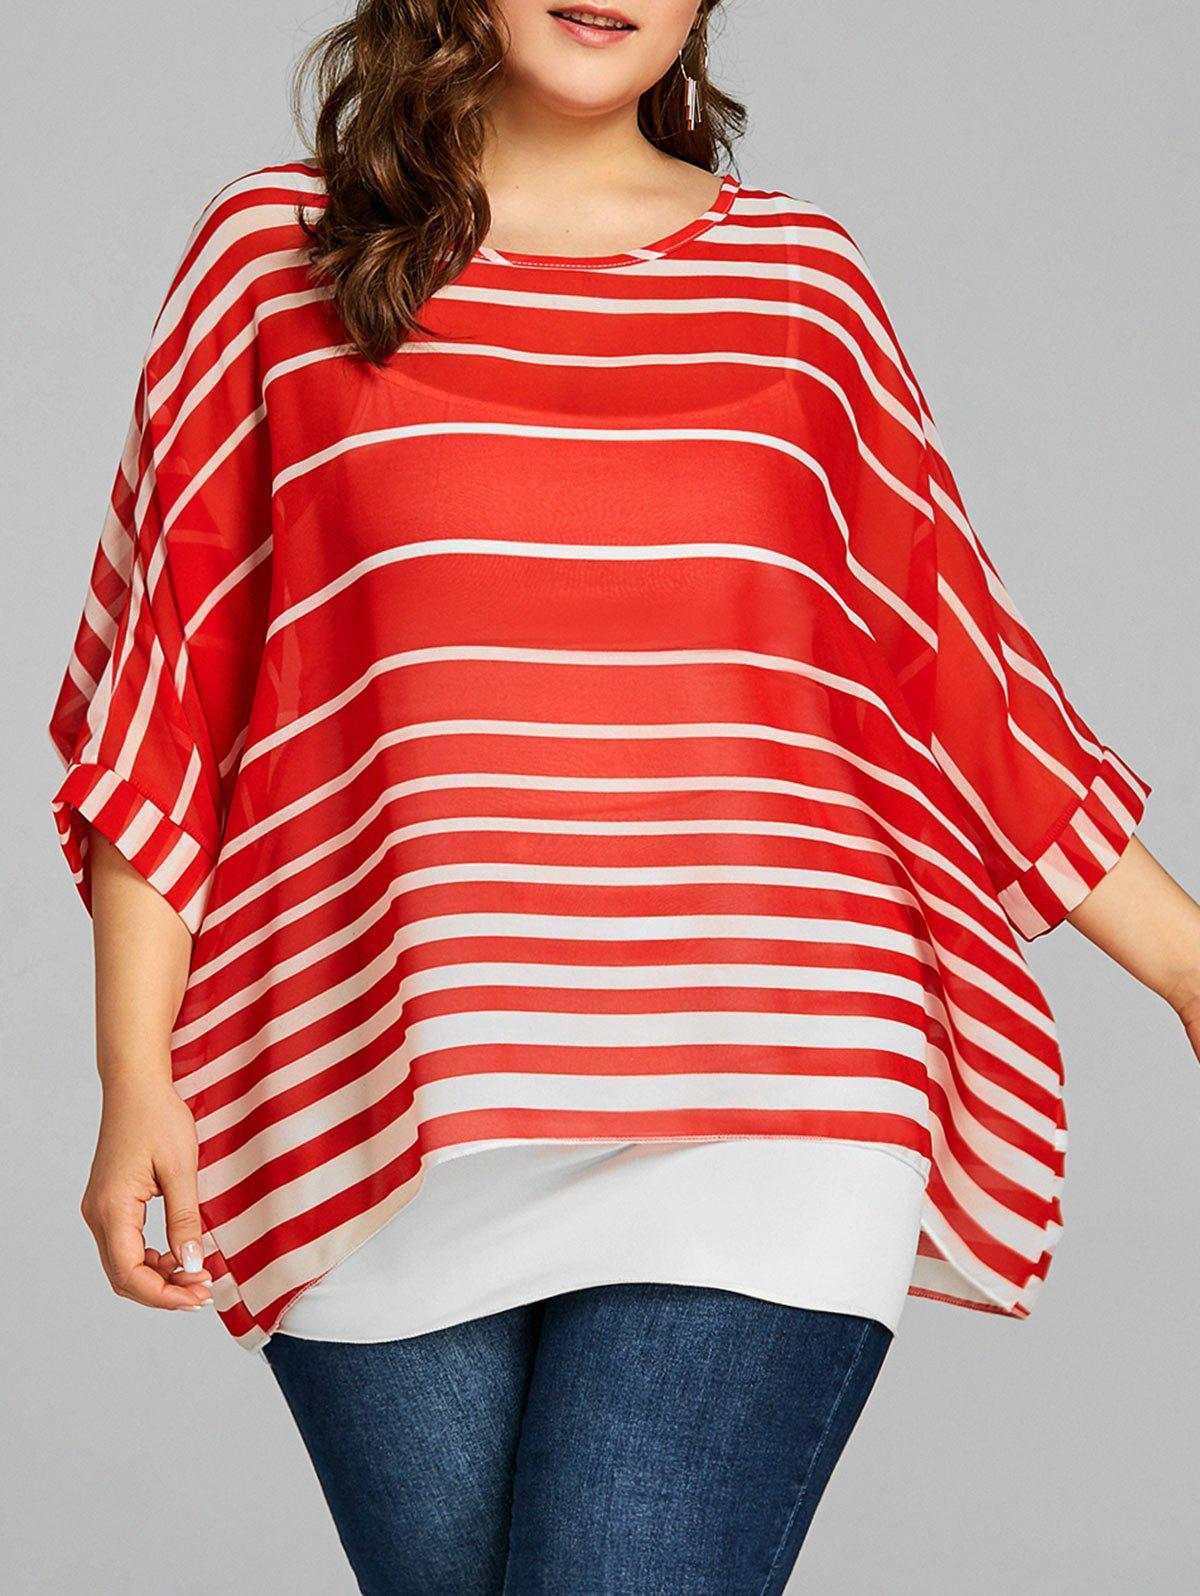 f4ee9c72a2b9 45% OFF] Plus Size Striped Dolman Sleeve Tunic | Rosegal